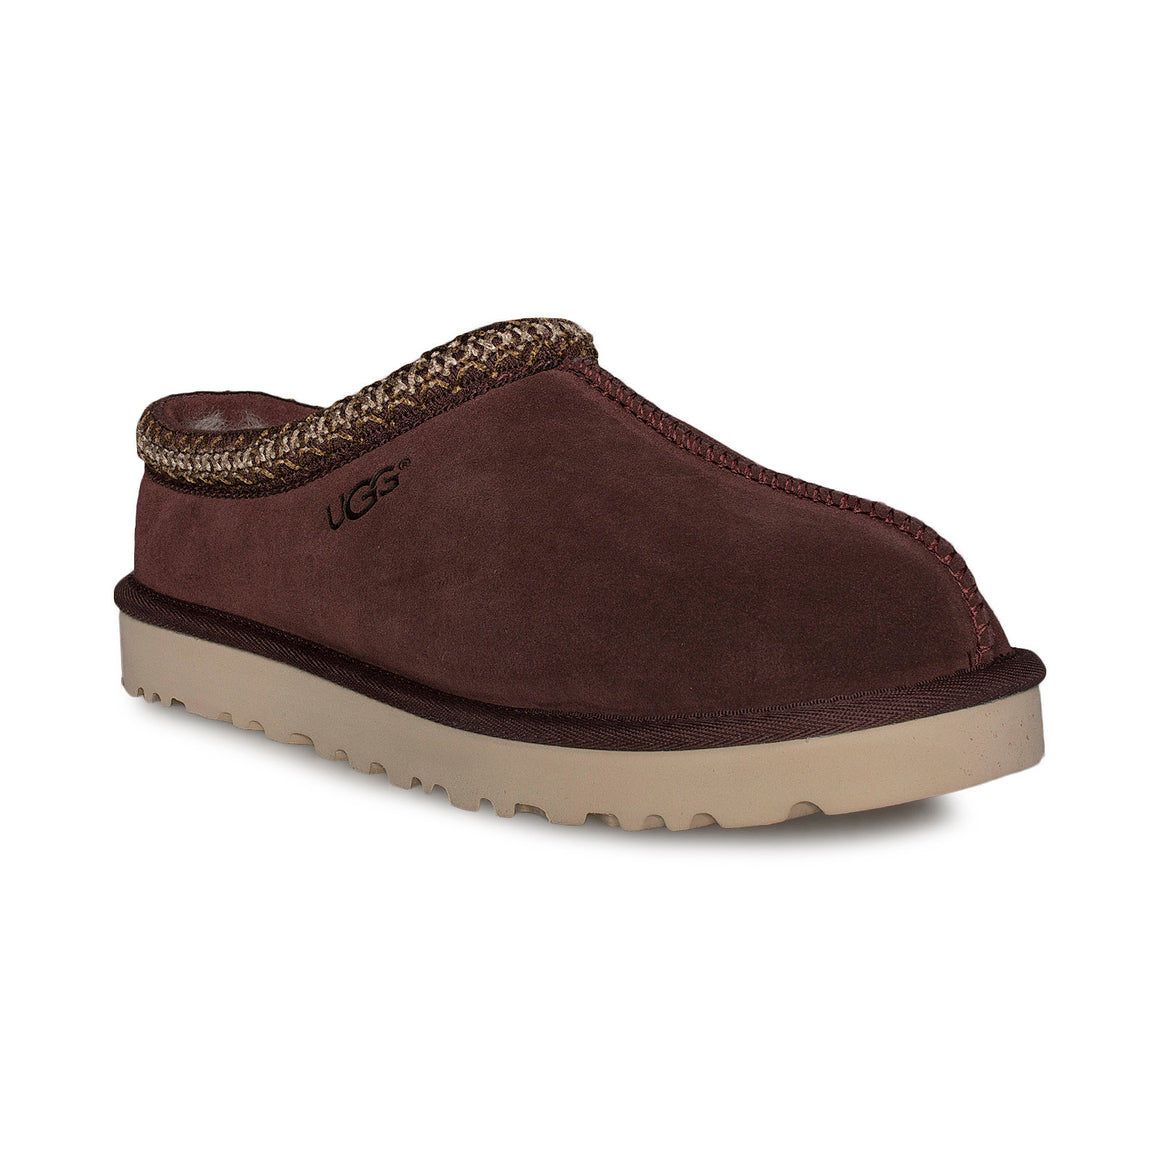 UGG Tasman Burgundy Slippers - Men's